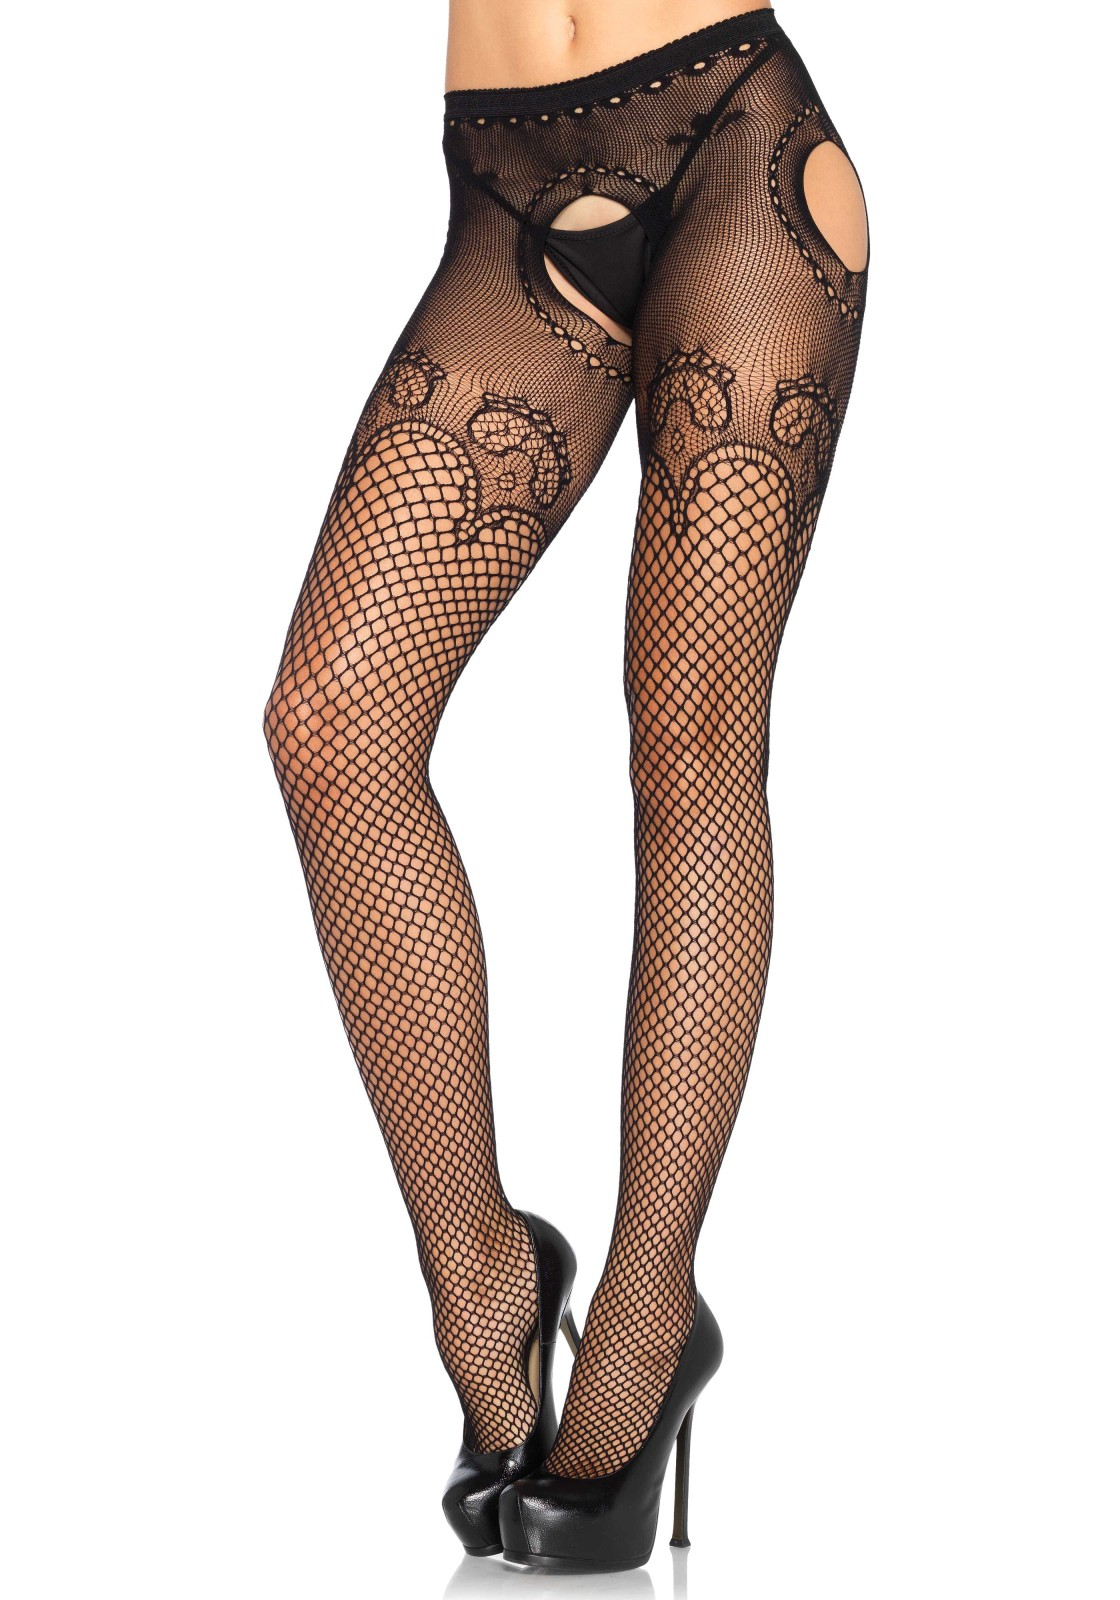 Industrial Net Suspender Hose With A Elegant Duchess Lace Top Accent.